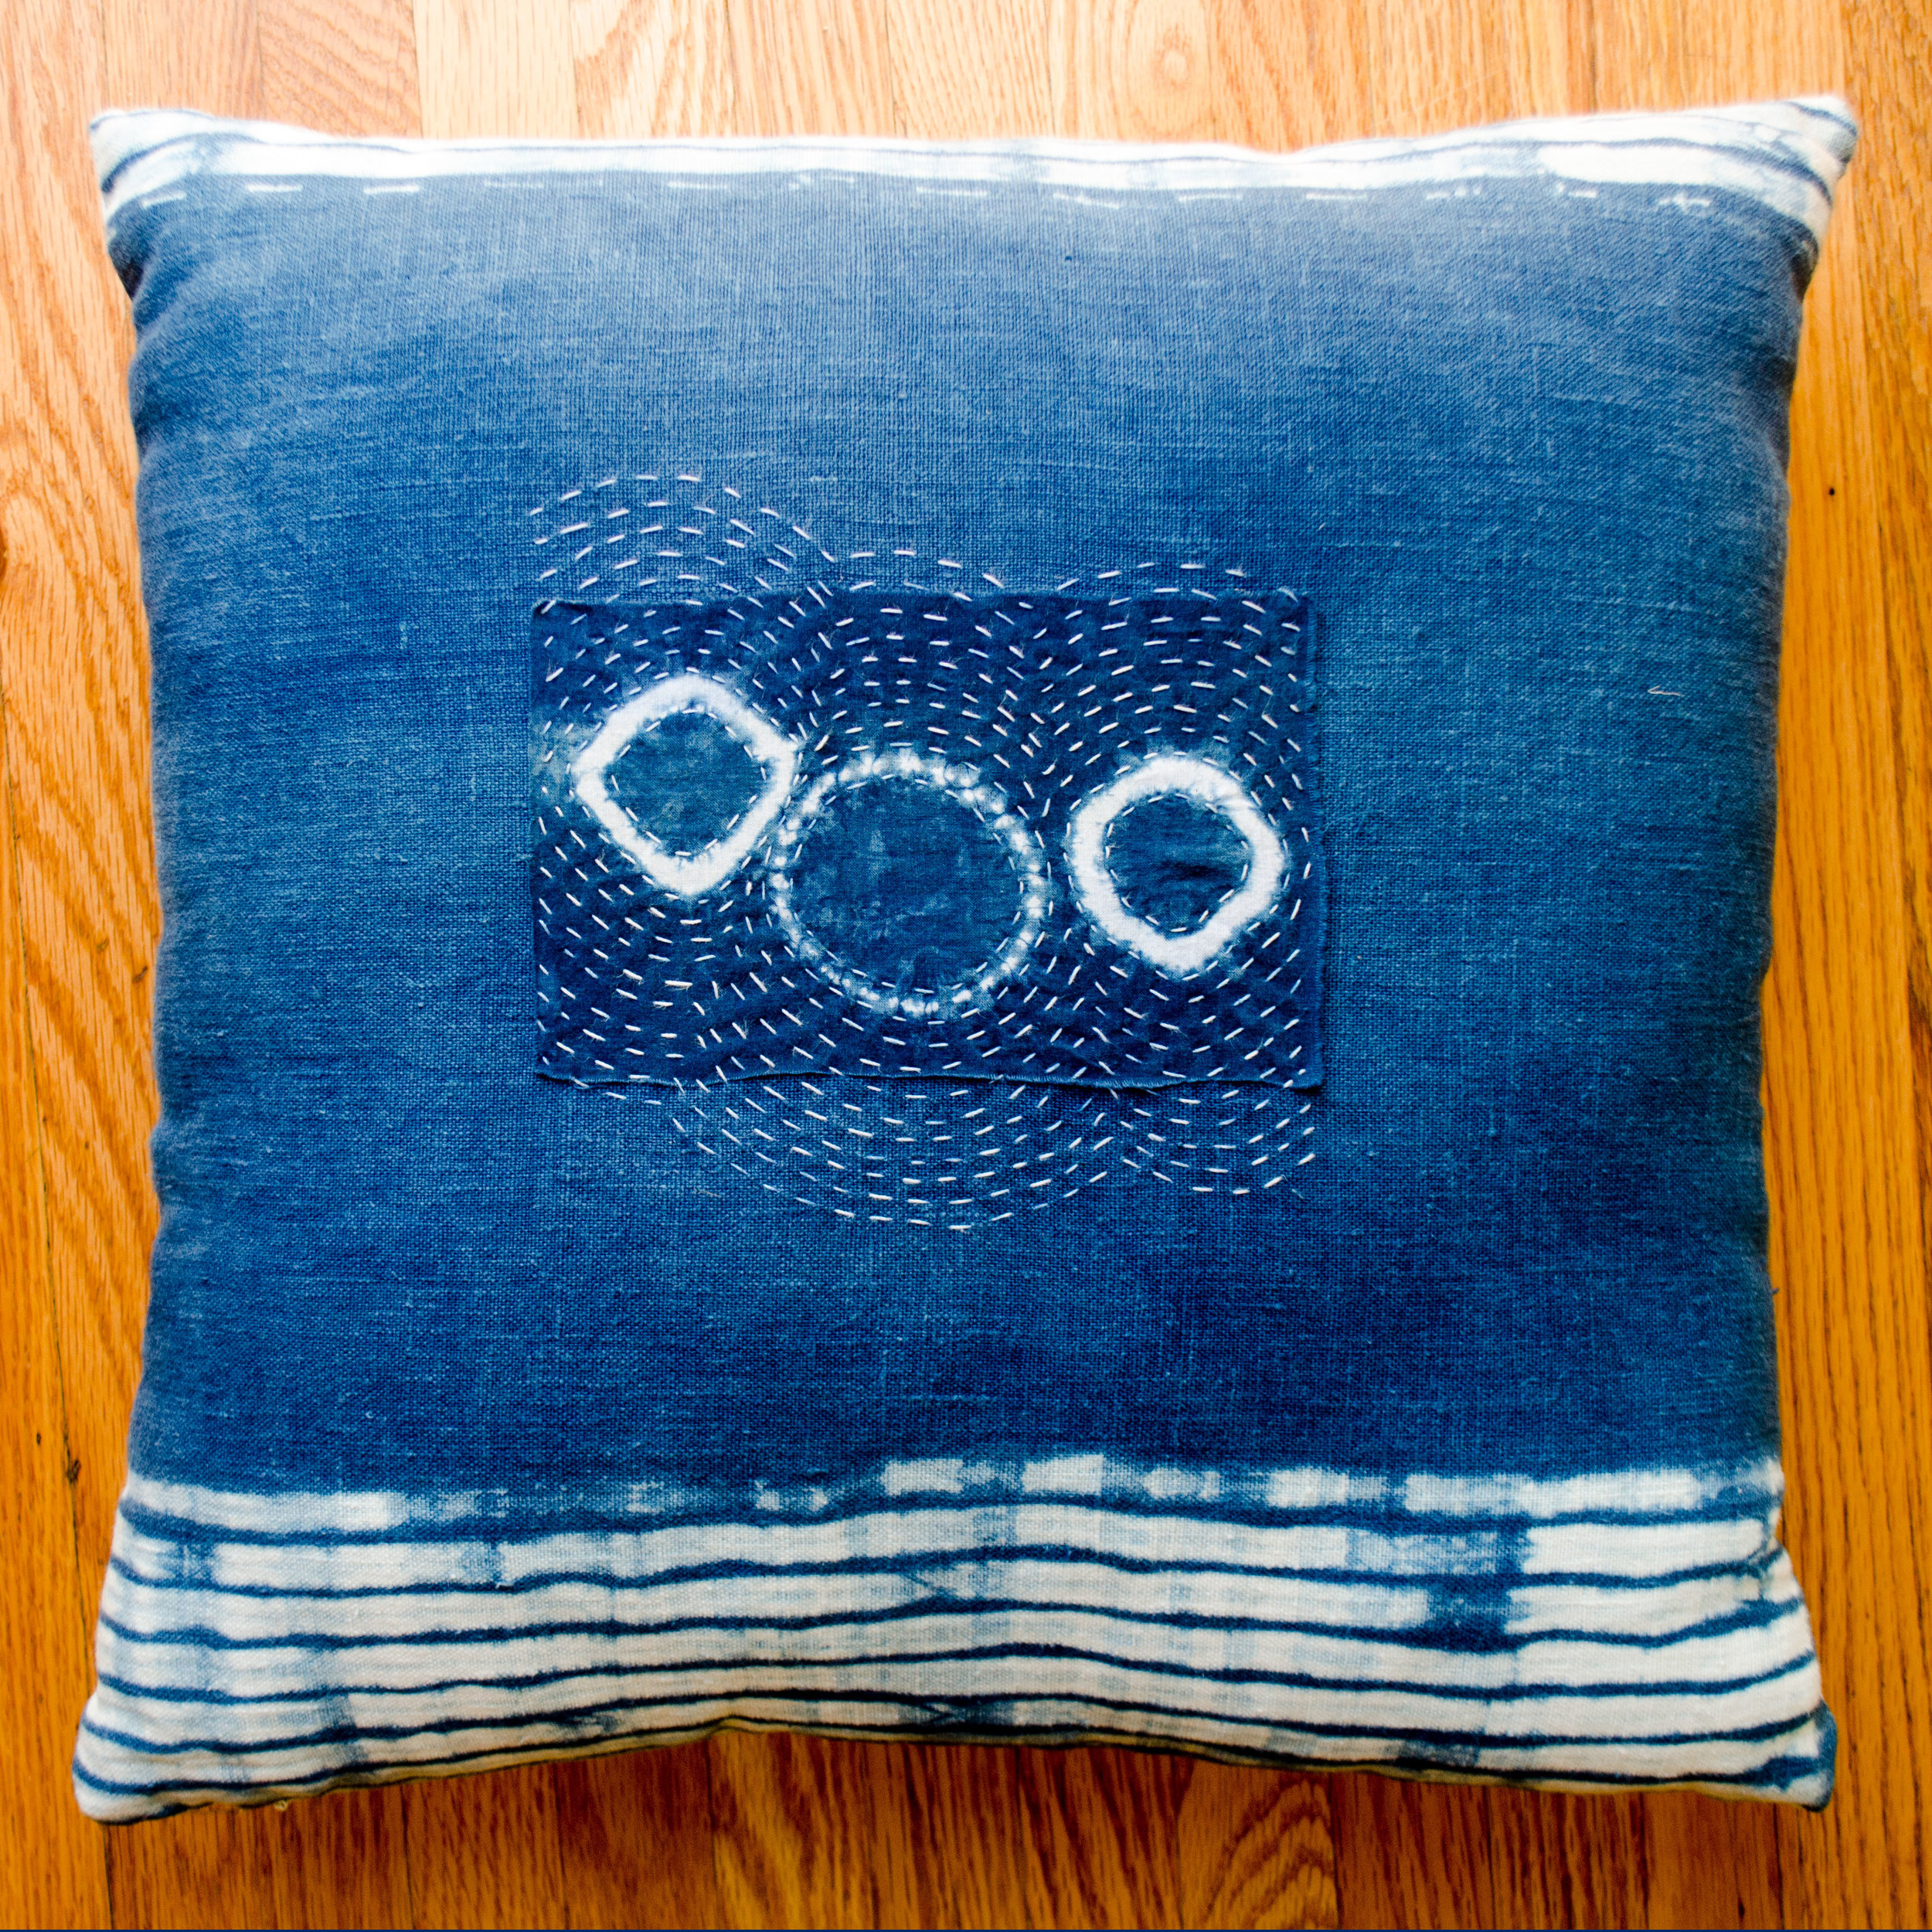 Shibori dyed linen pillow with hand-stitched boro patch